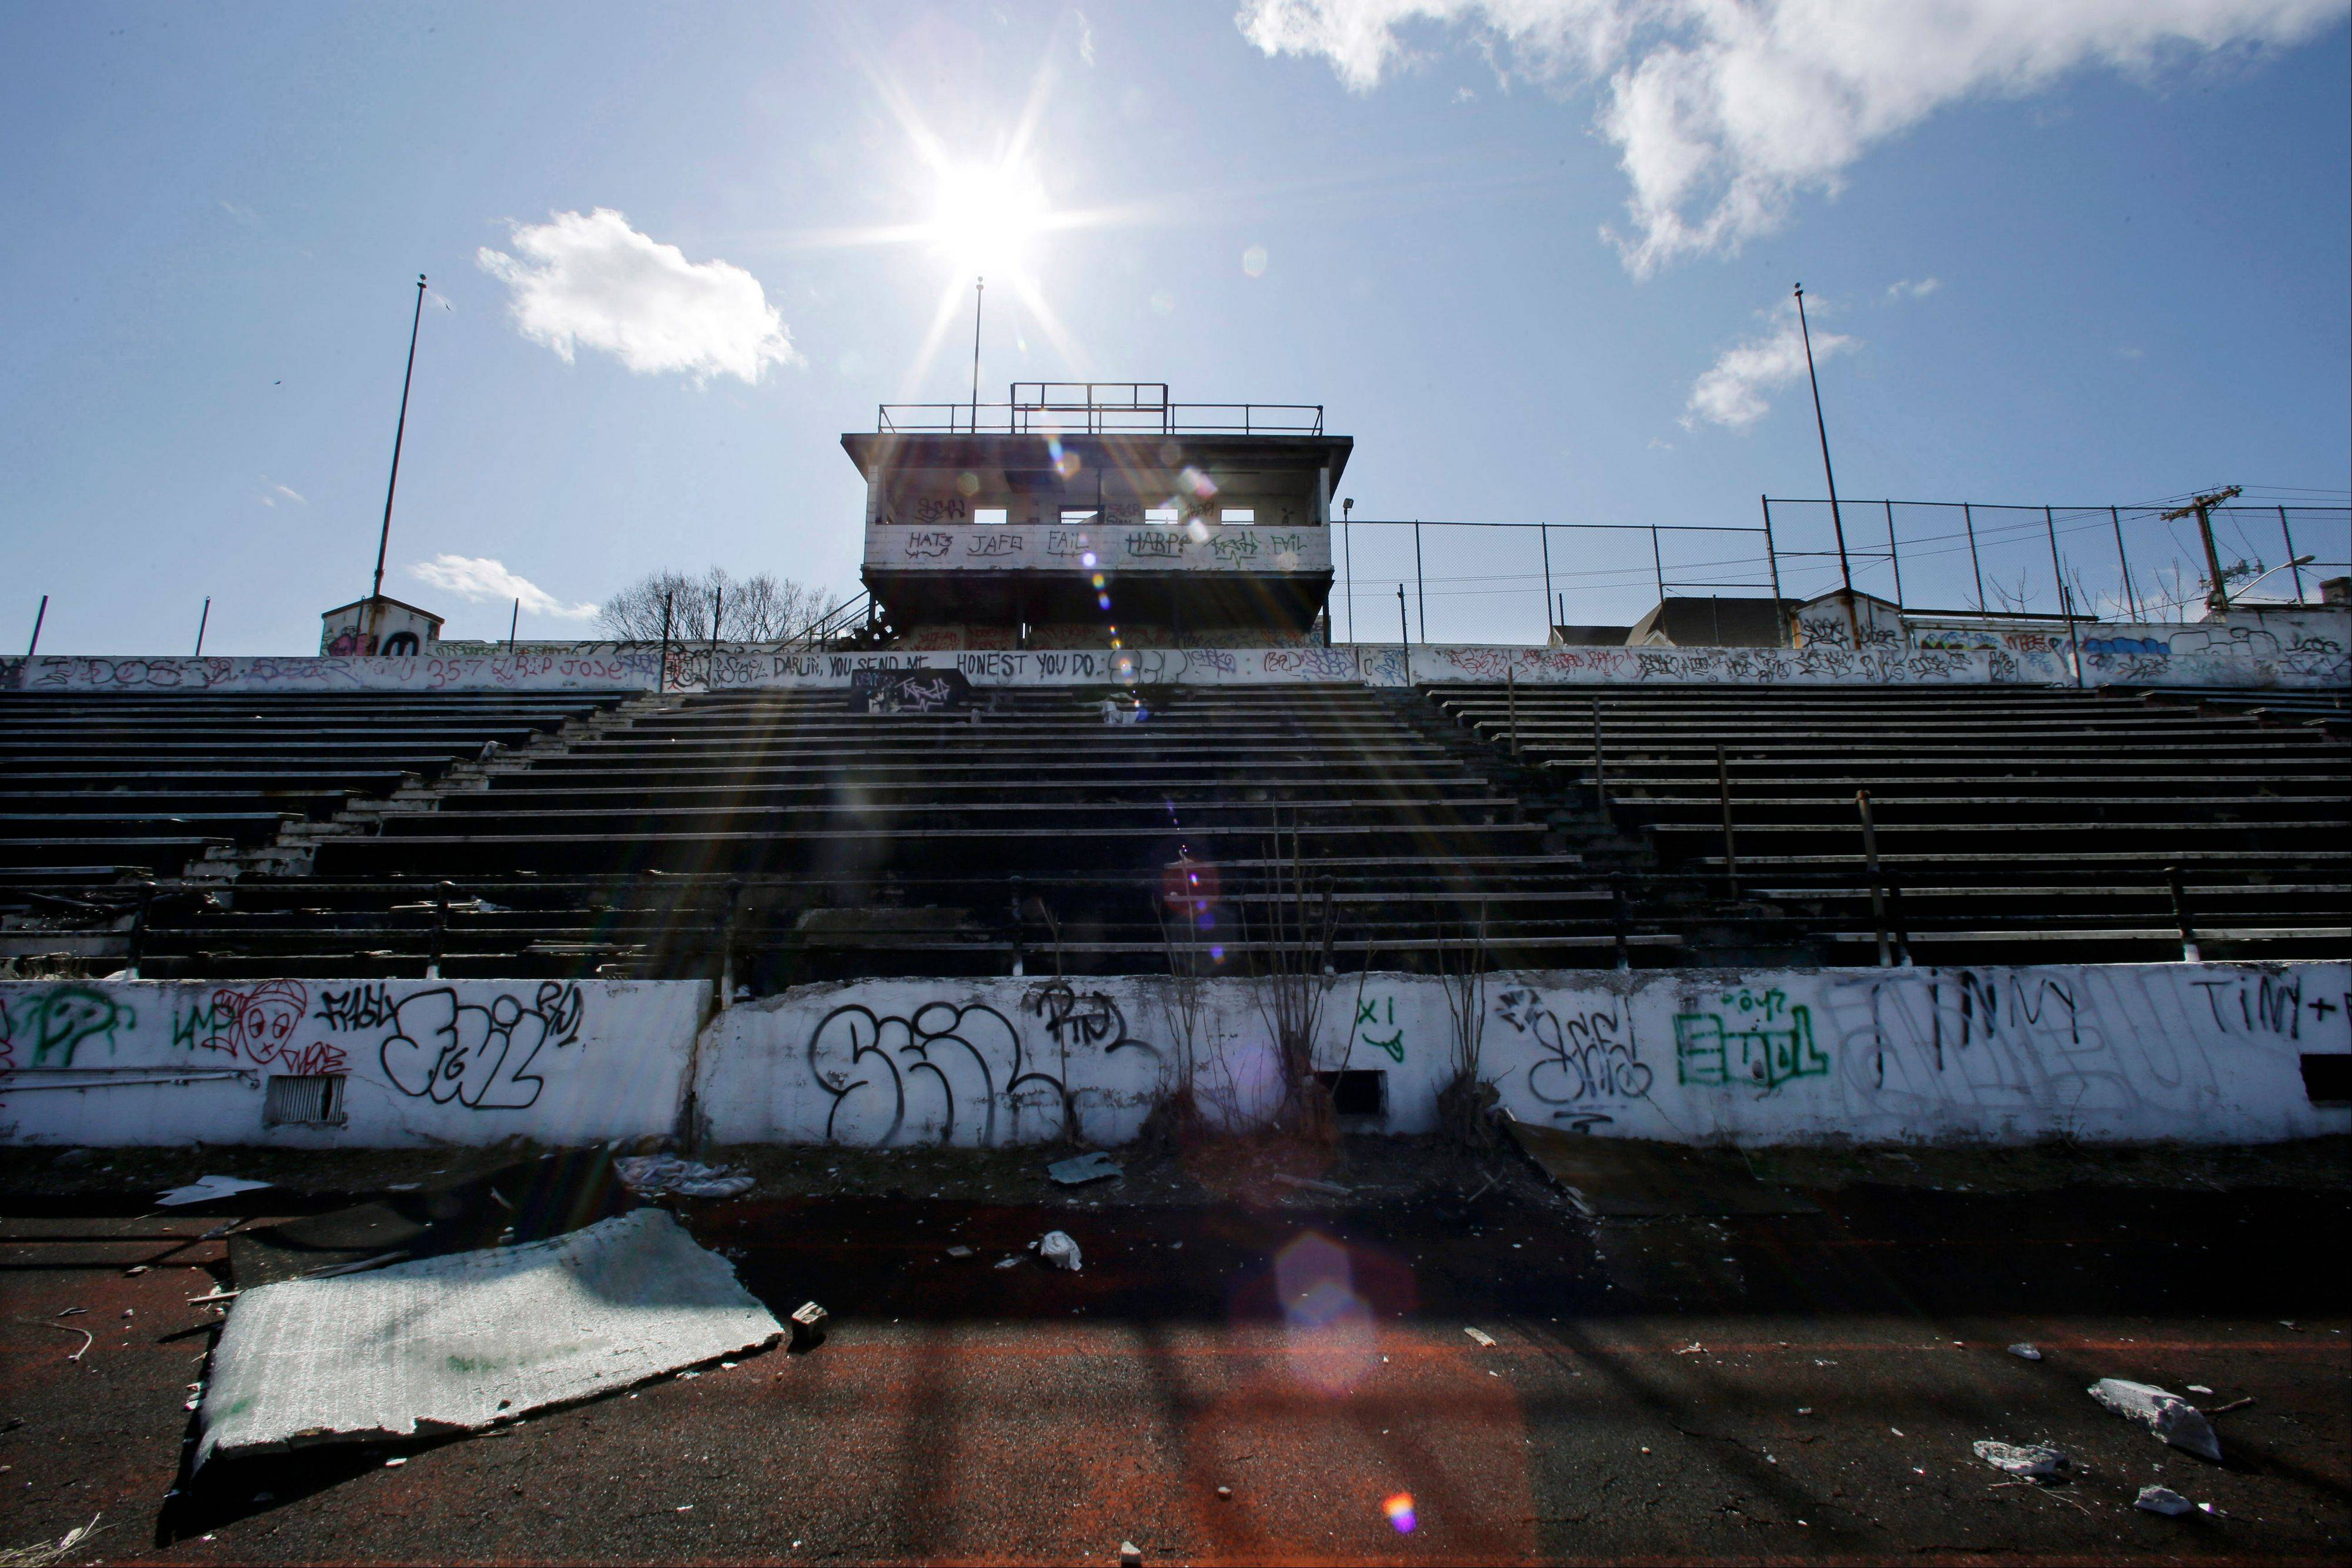 A graffiti-covered press box and deteriorated artificial turf in Hinchliffe Stadium in Paterson, N.J.